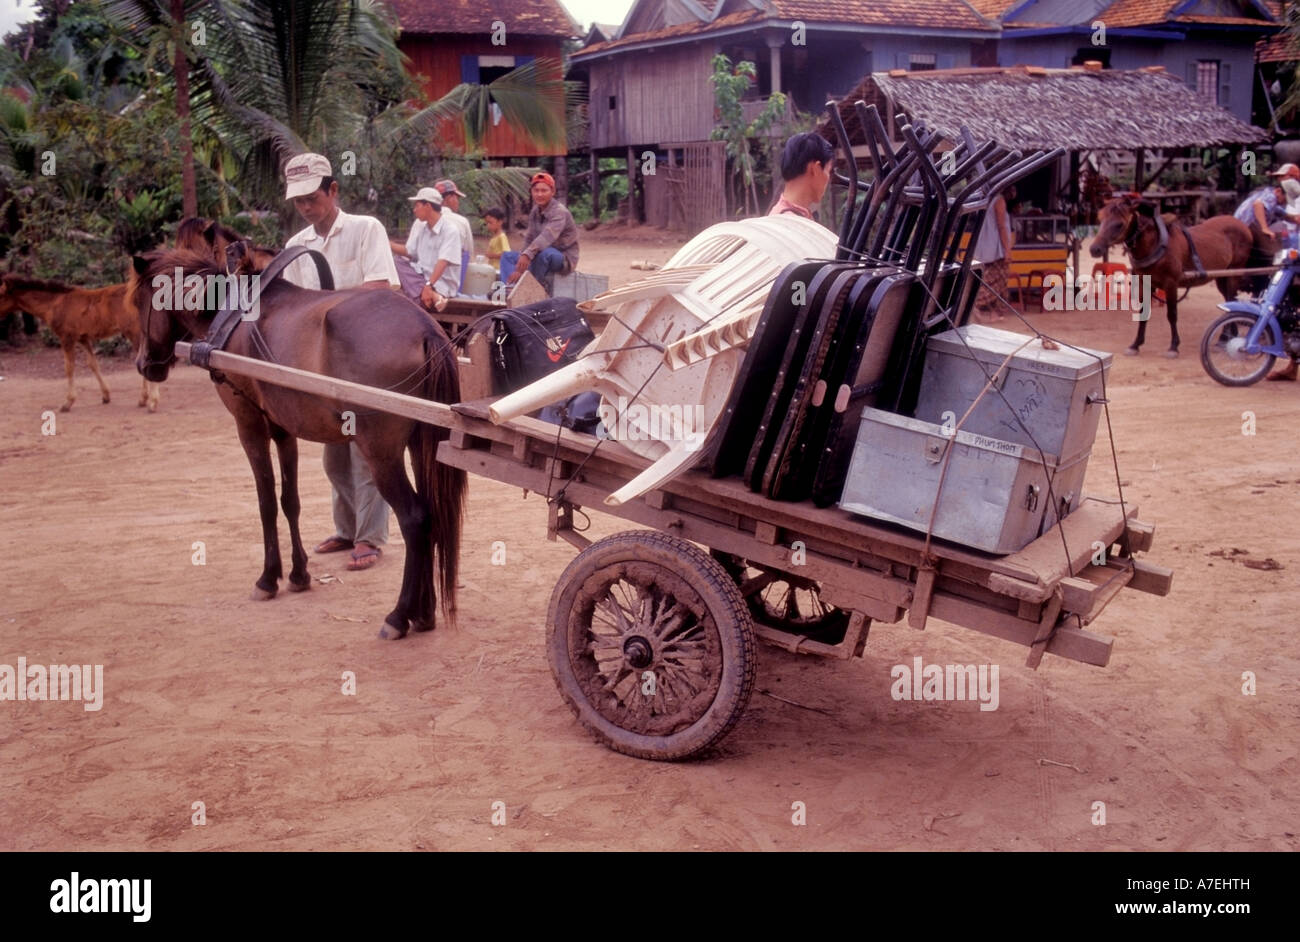 Mobile medical clinic loaded onto horse cart ready to transport to rural Cambodian villages - Stock Image